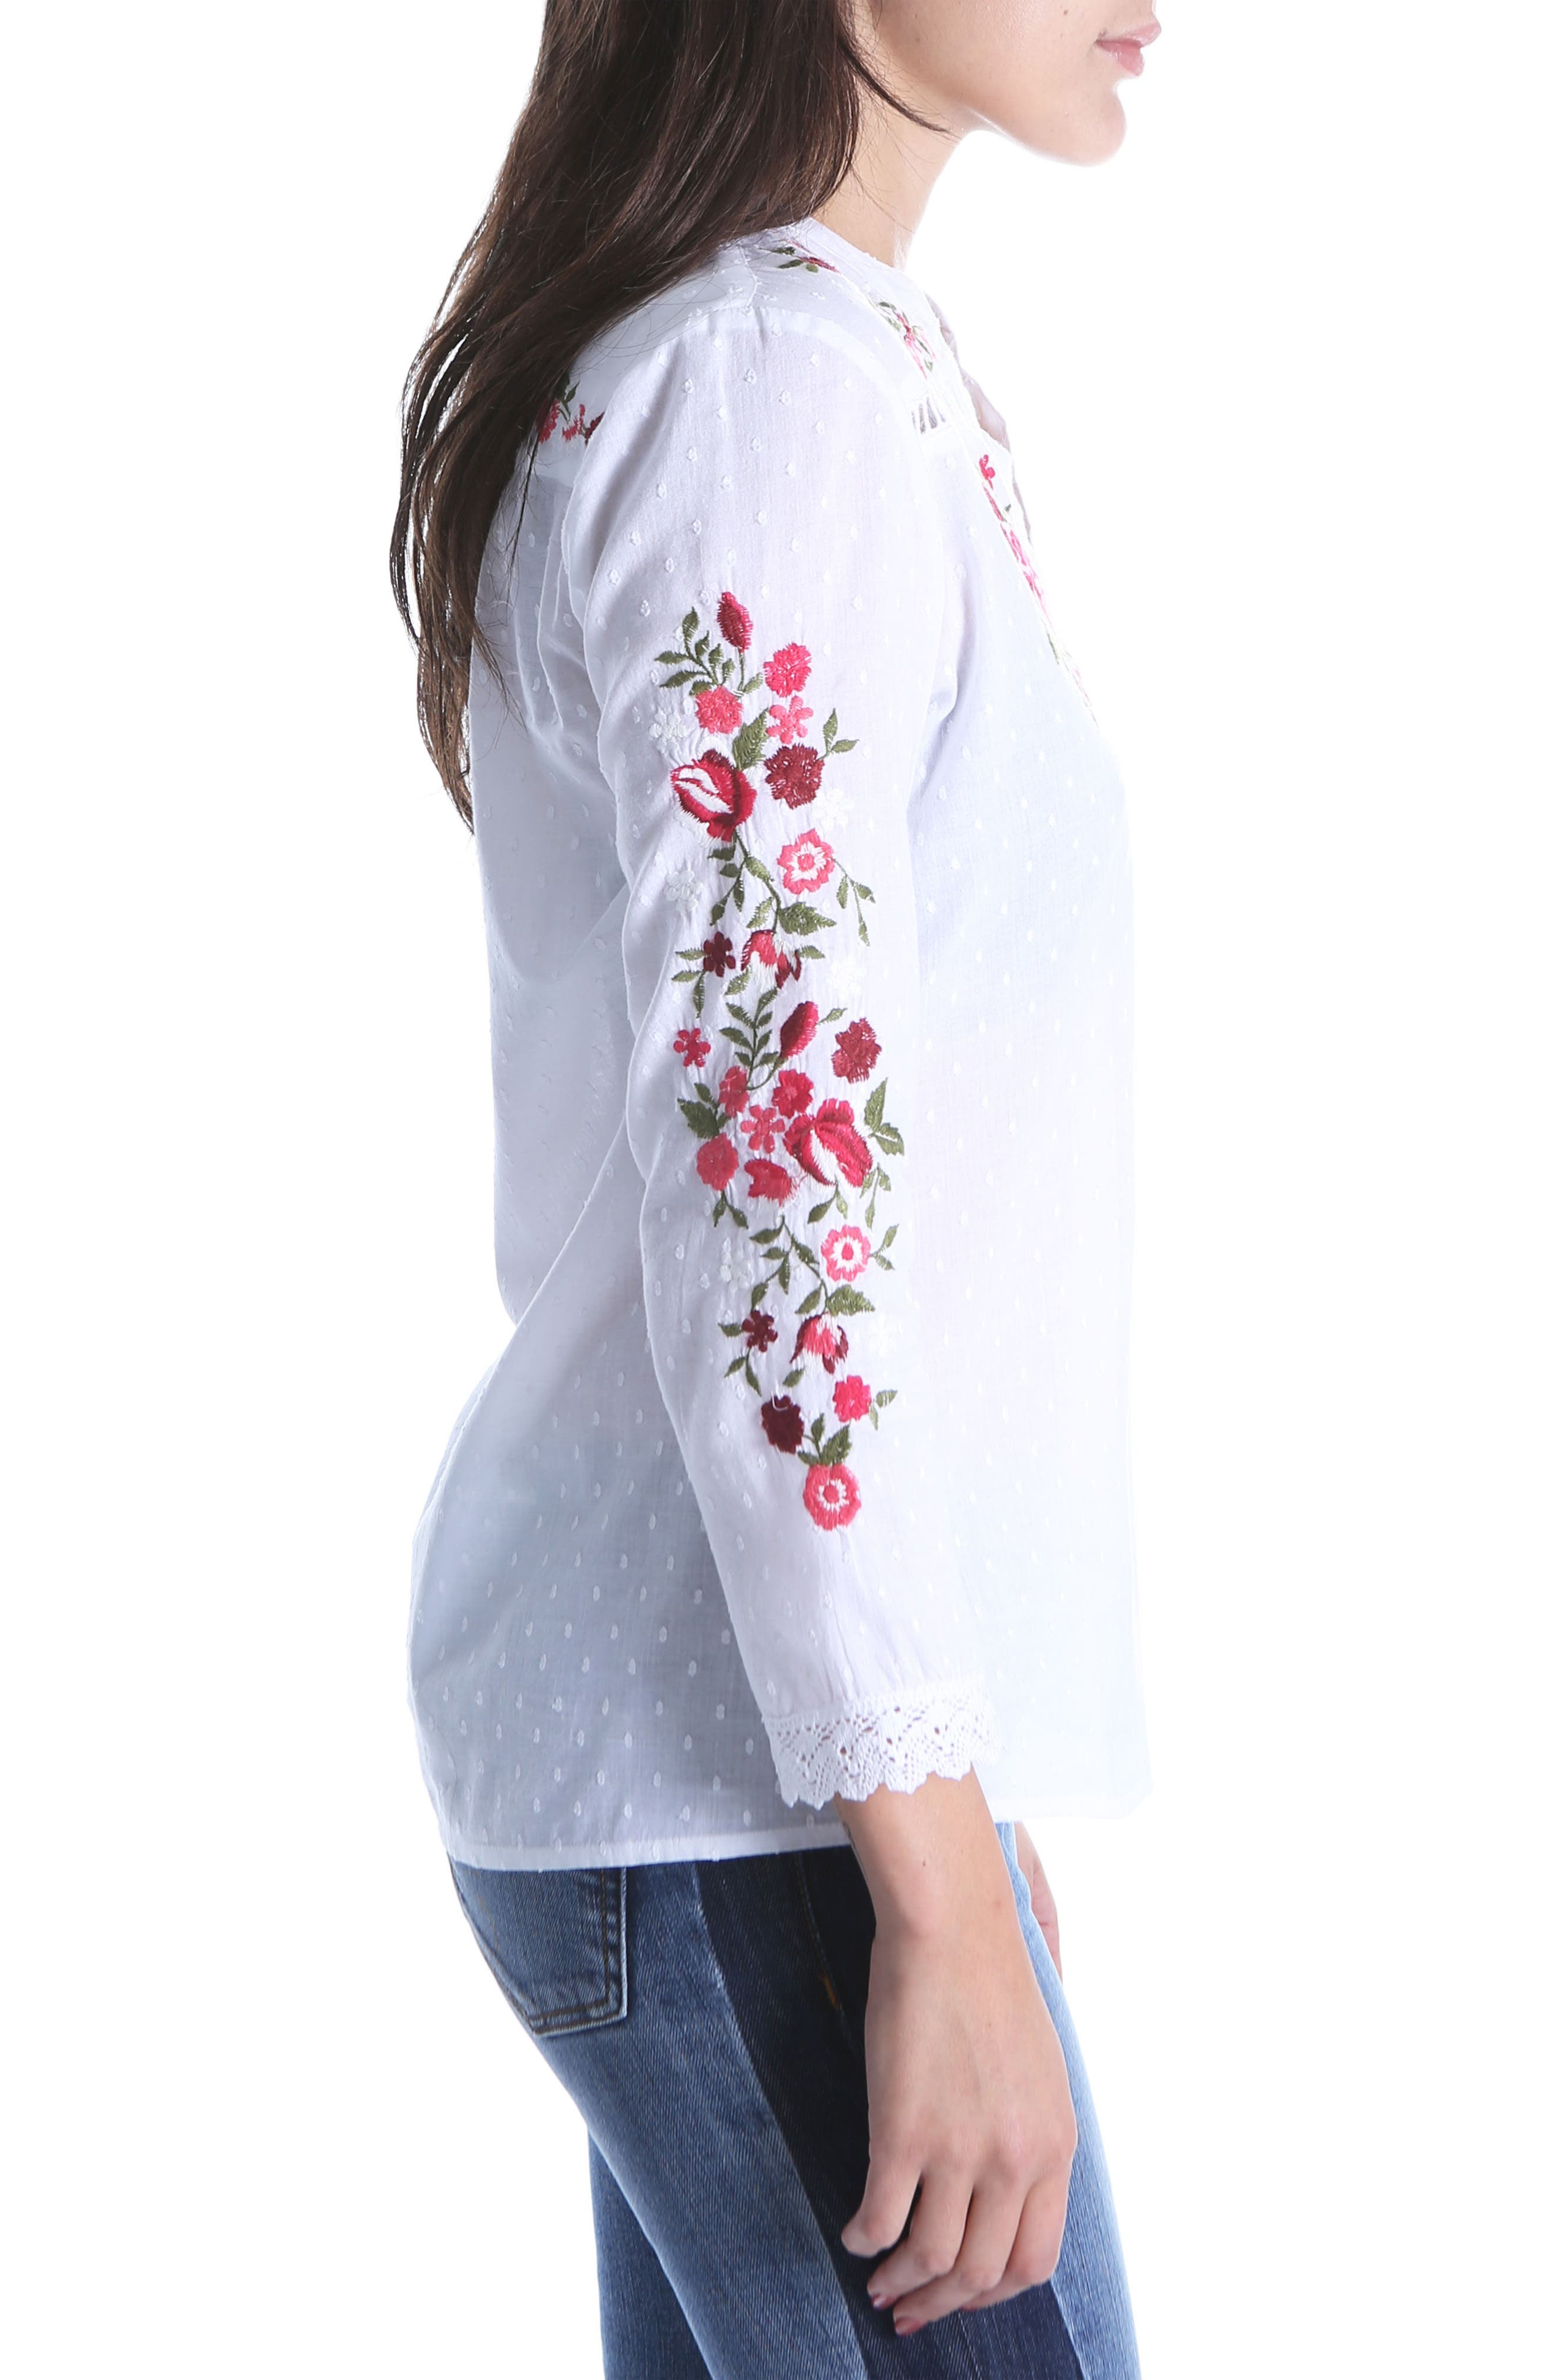 Kat Embroidered Lace Detail Blouse,                             Alternate thumbnail 3, color,                             White